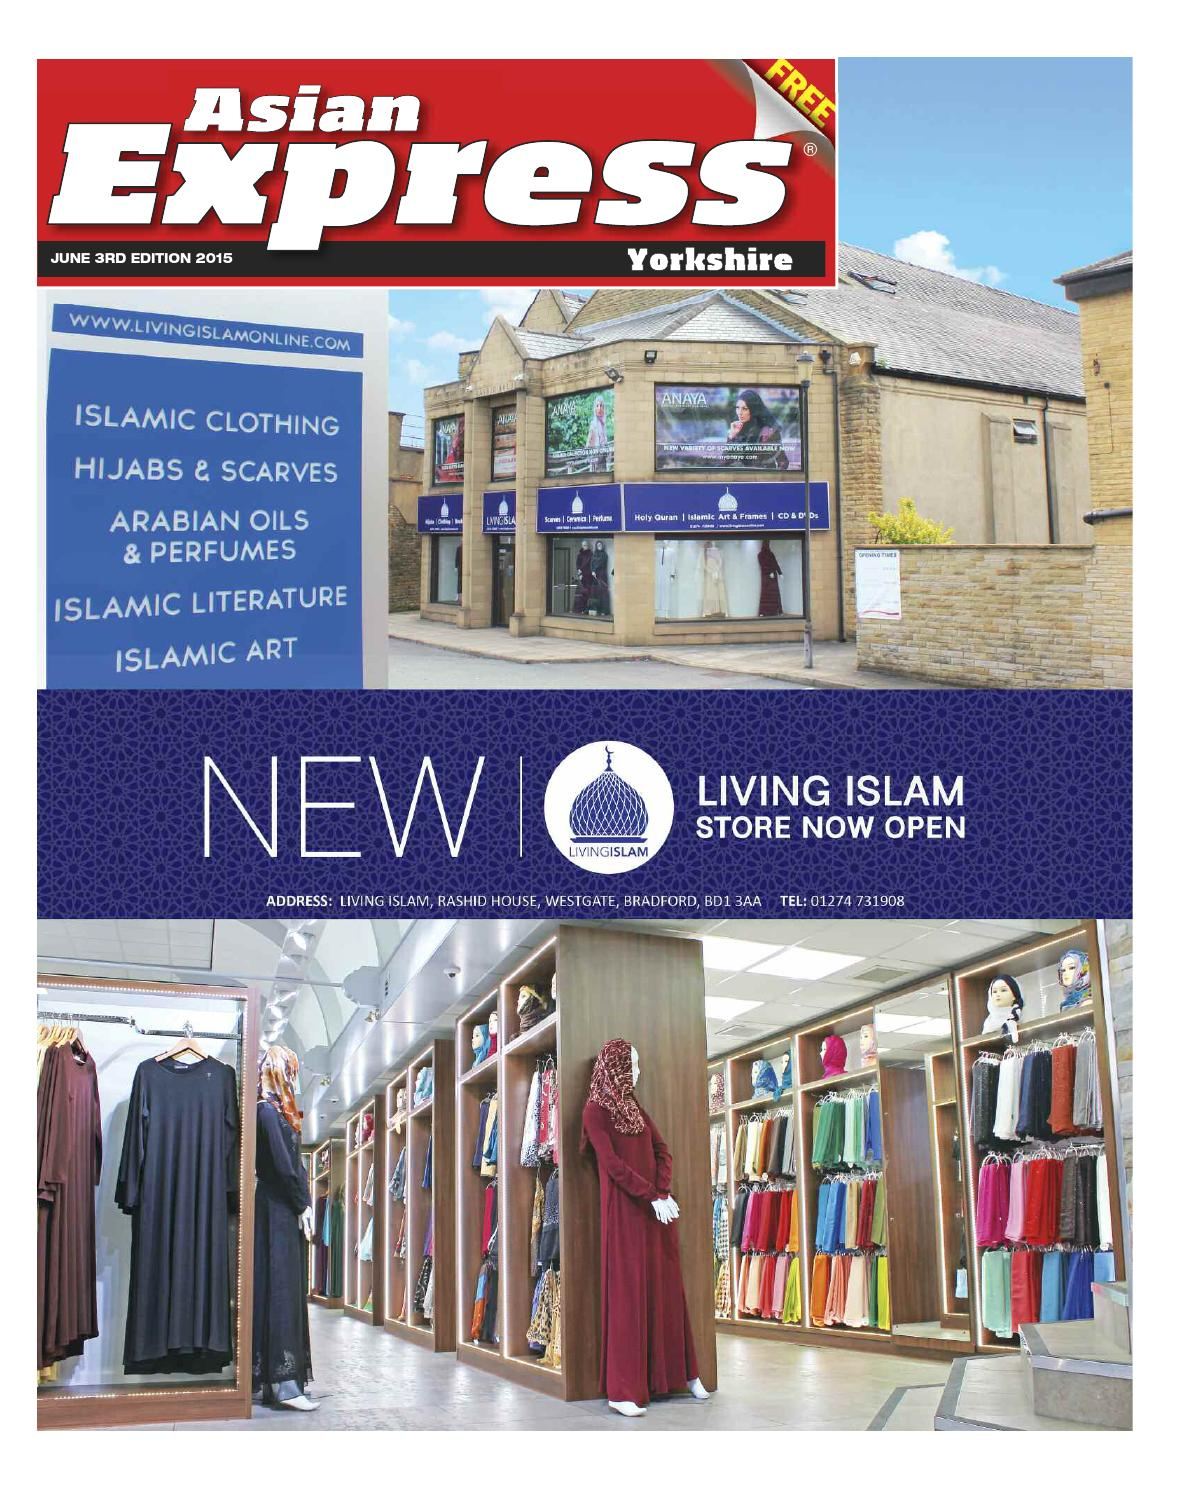 Asian express yorkshire june 3rd edition 2015 by asian expres issuu solutioingenieria Gallery